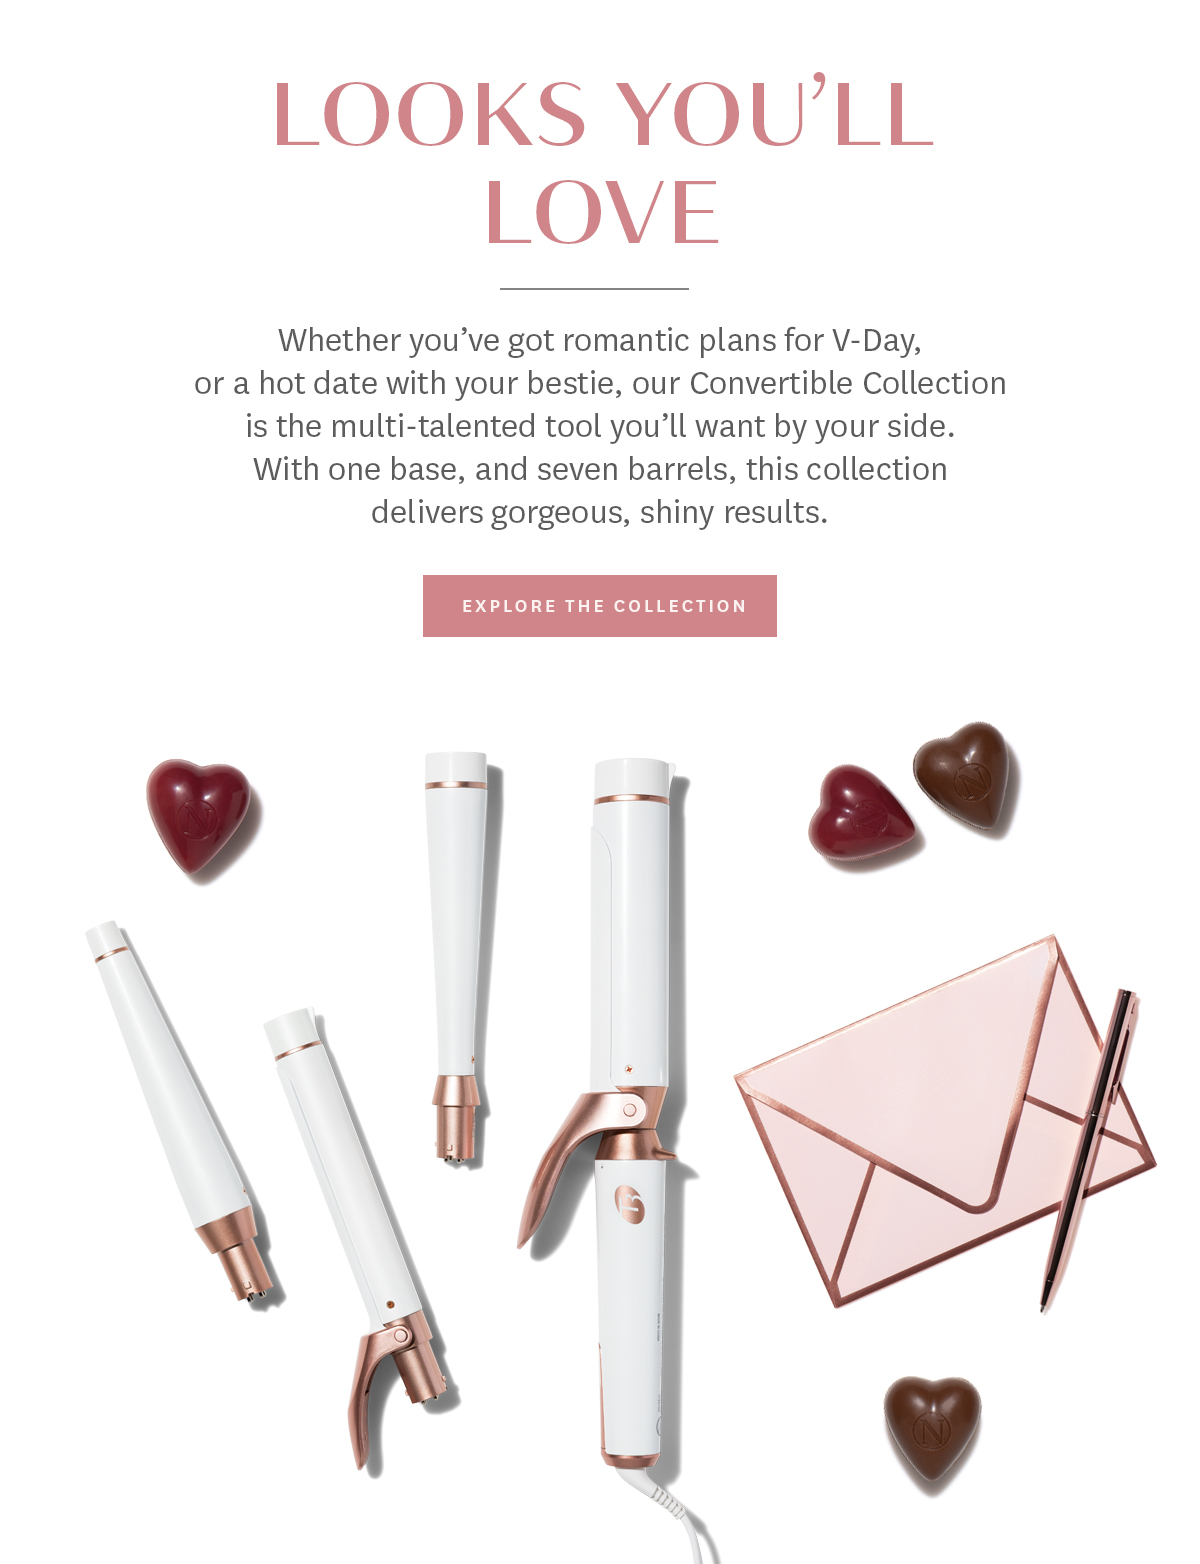 Our Convertible Collection is the multi-talented tool you'll want by your side this Valentine's Day